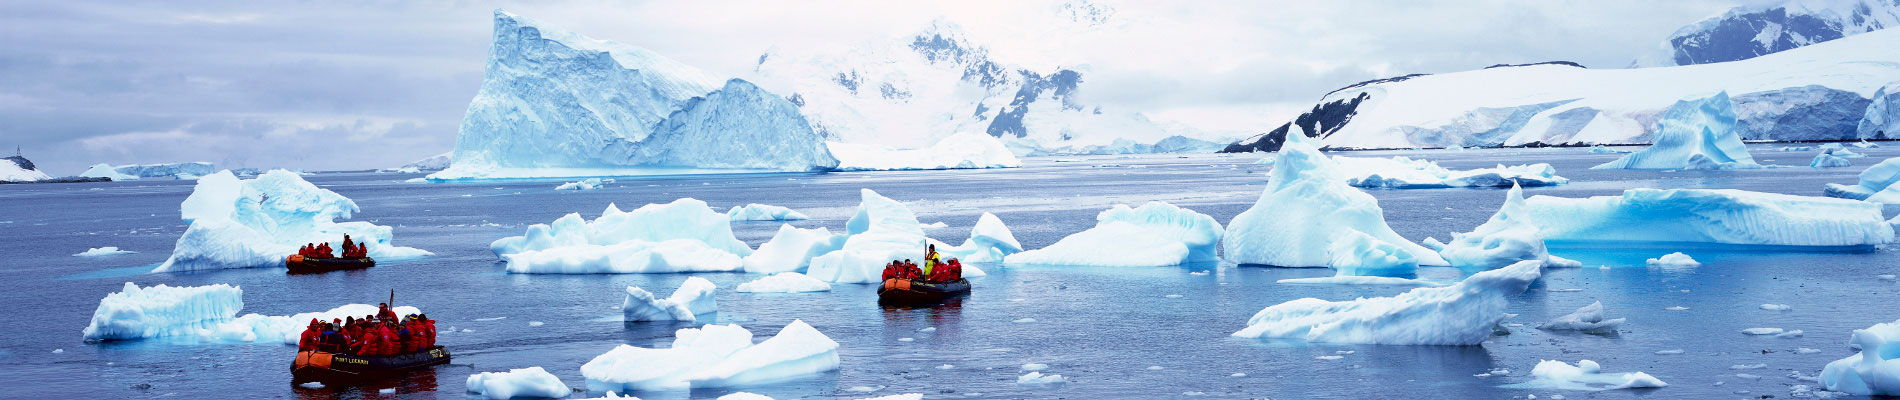 antarctique-excursion-polaire-croisiere-st